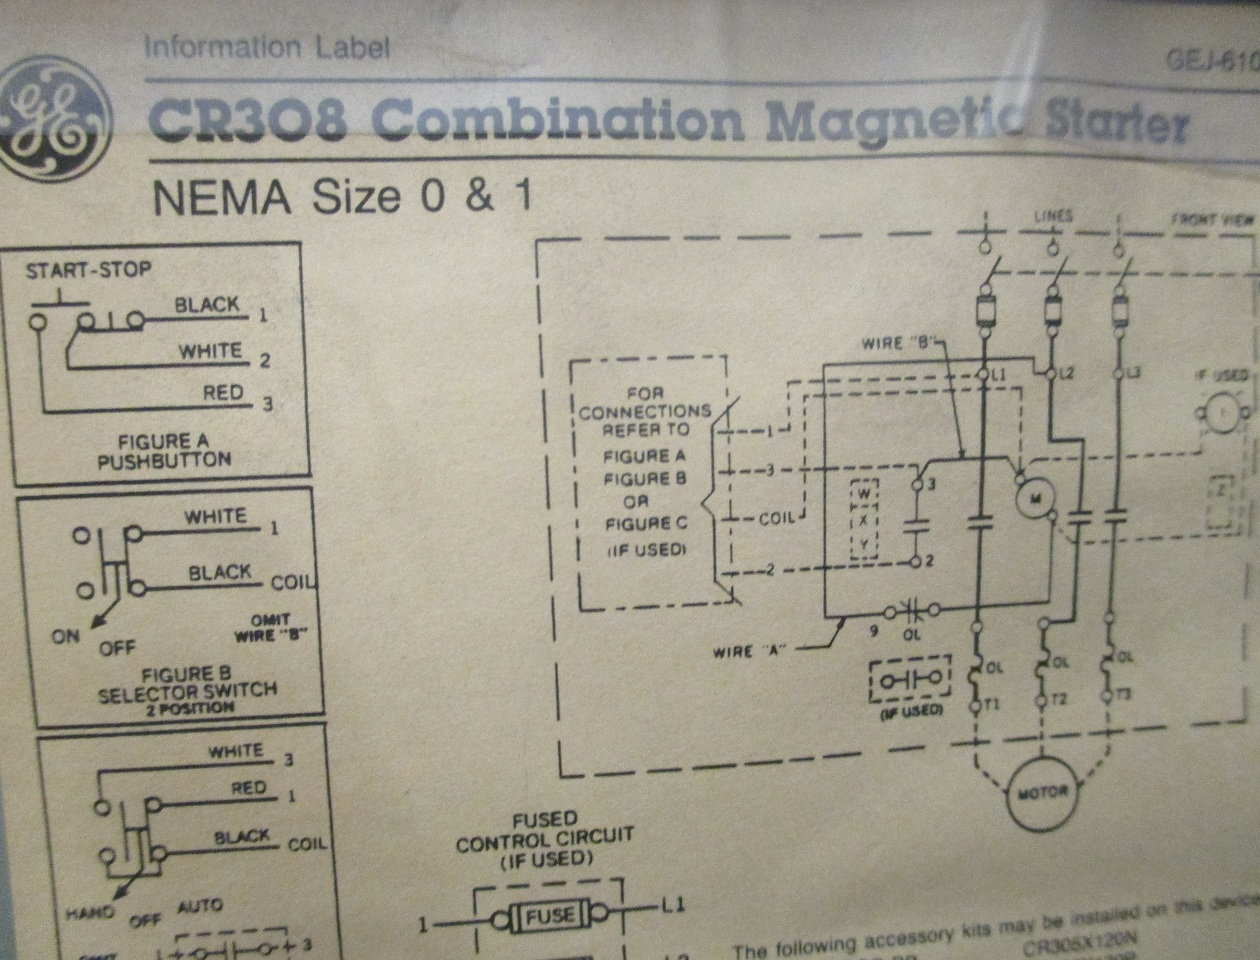 dis3585 ge combination magnetic starter cr308 600v max complete enclosure 300 line control 3?resize\=665%2C507 ge cr 308 motor starter wiring diagram wiring diagrams  at highcare.asia